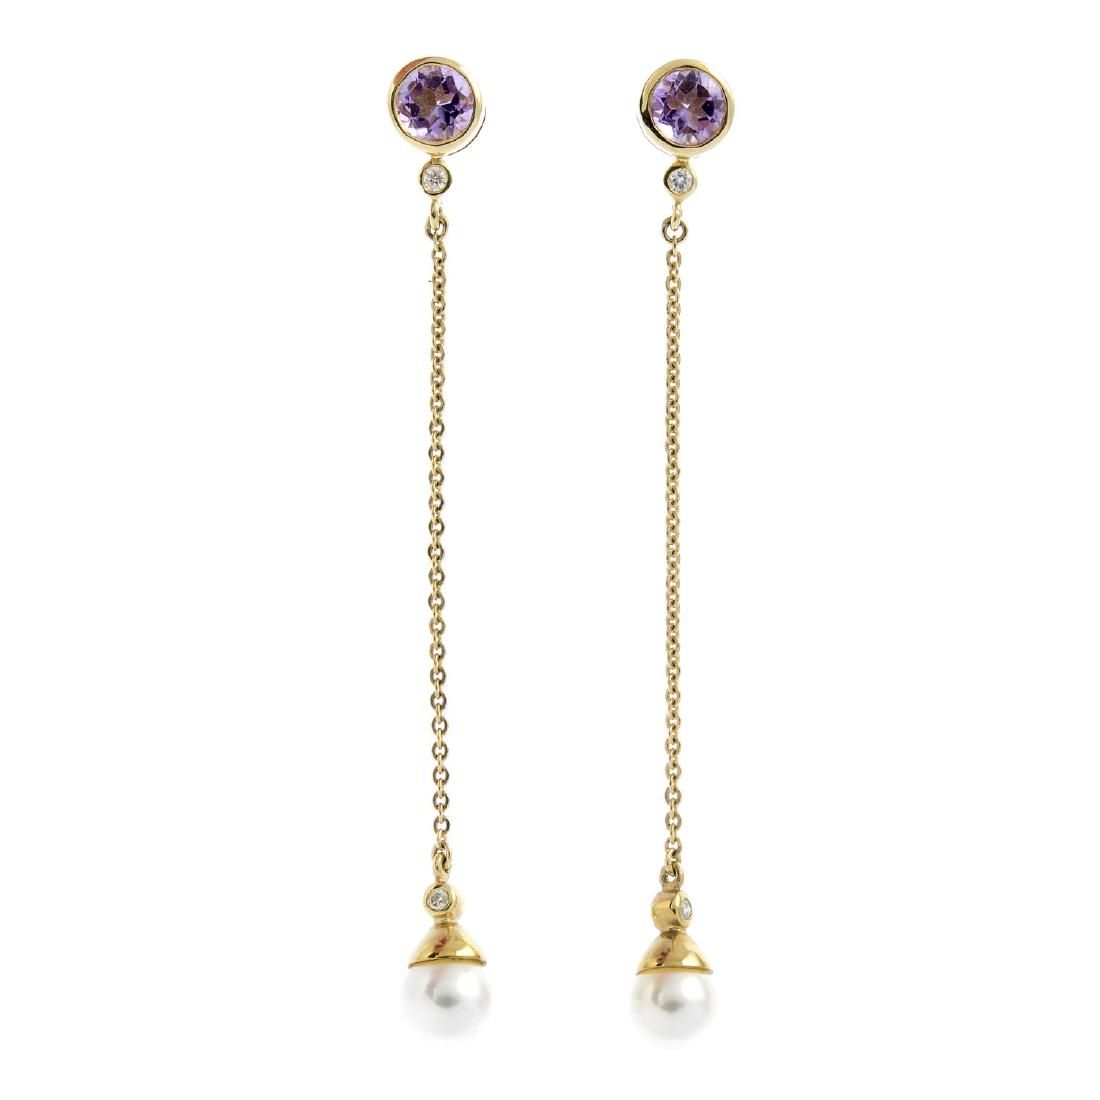 A pair of 9ct gold amethyst and cultured pearl